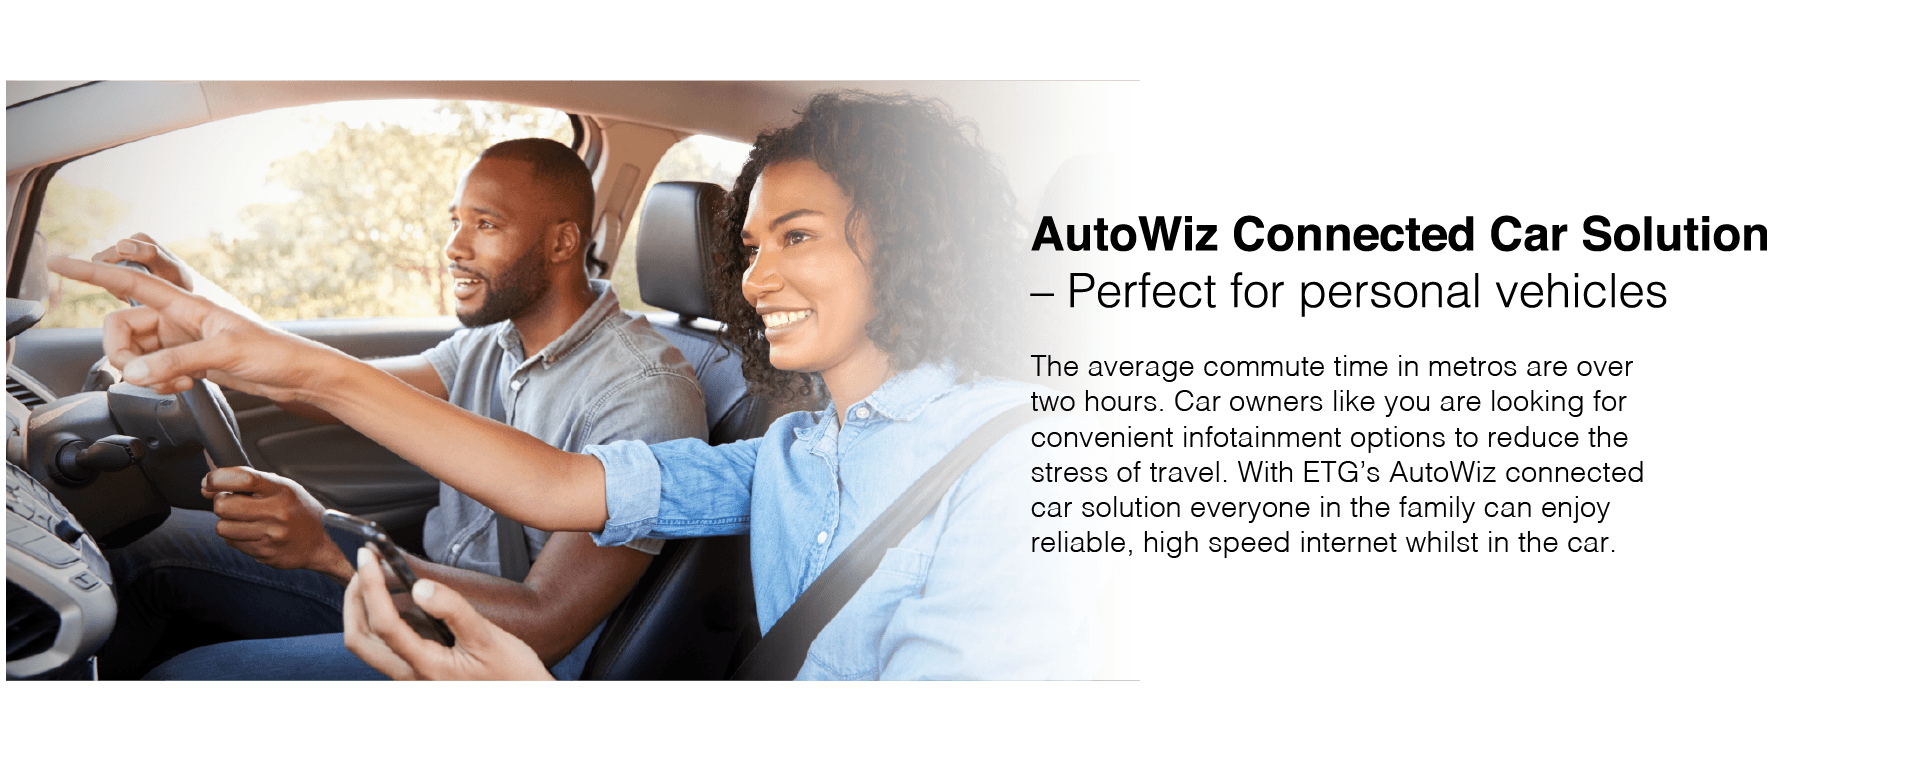 AutoWiz Connected Car Solution - Evolution Technology Group